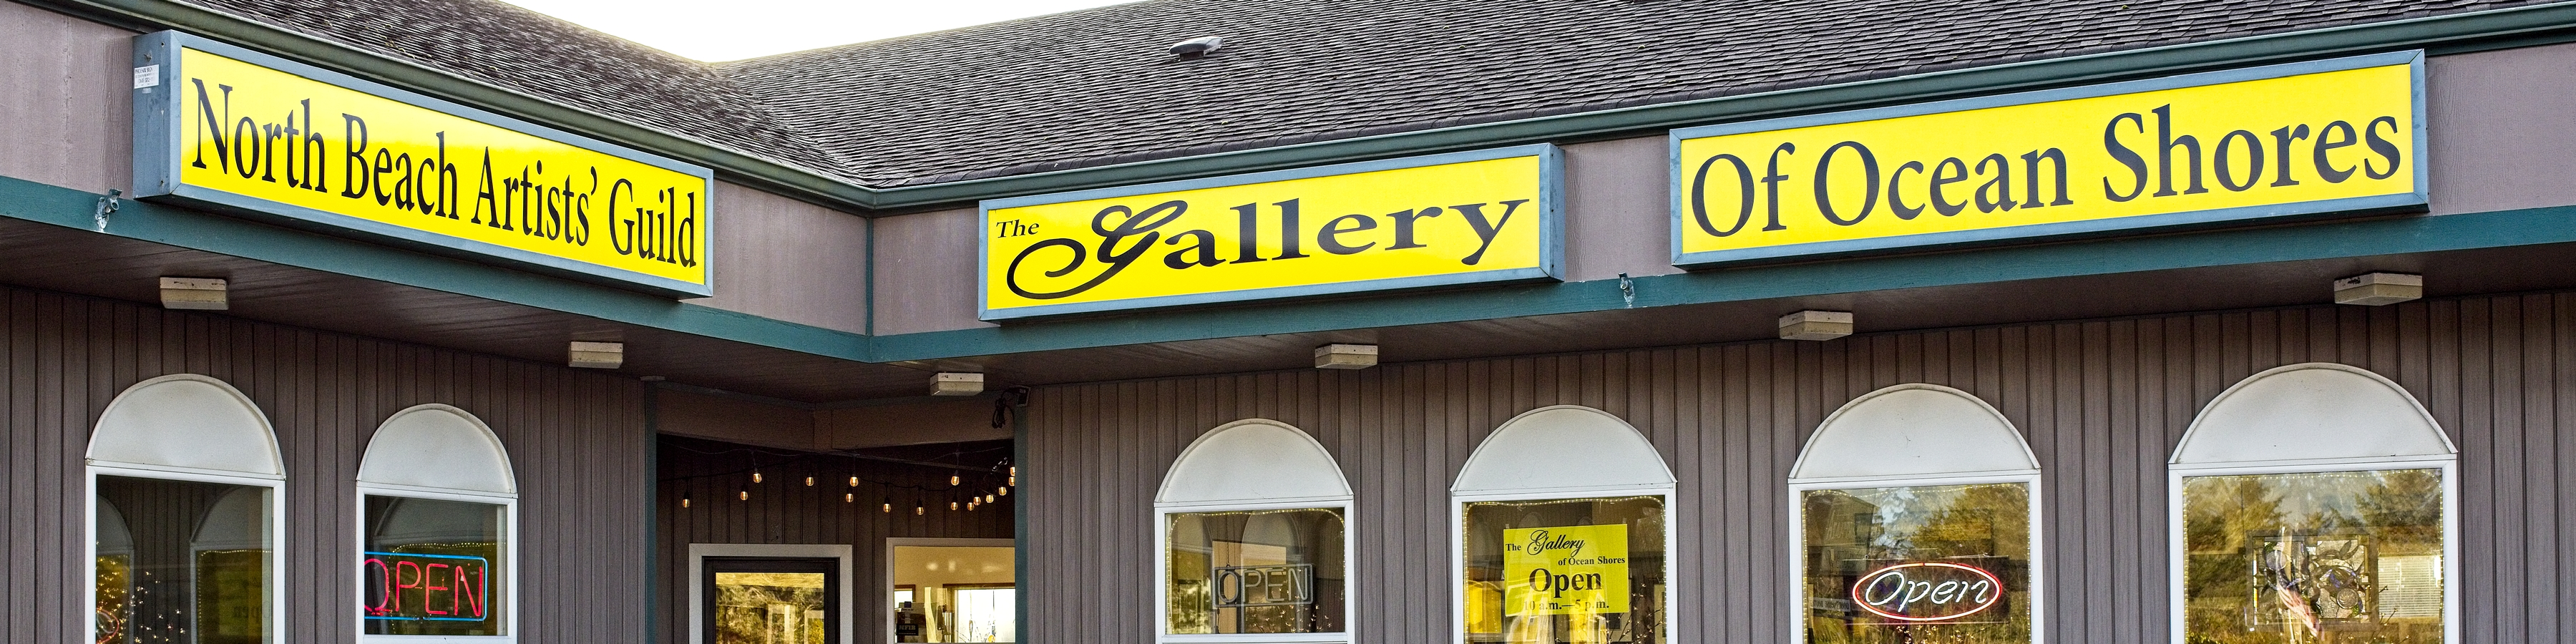 The Gallery of Ocean Shores